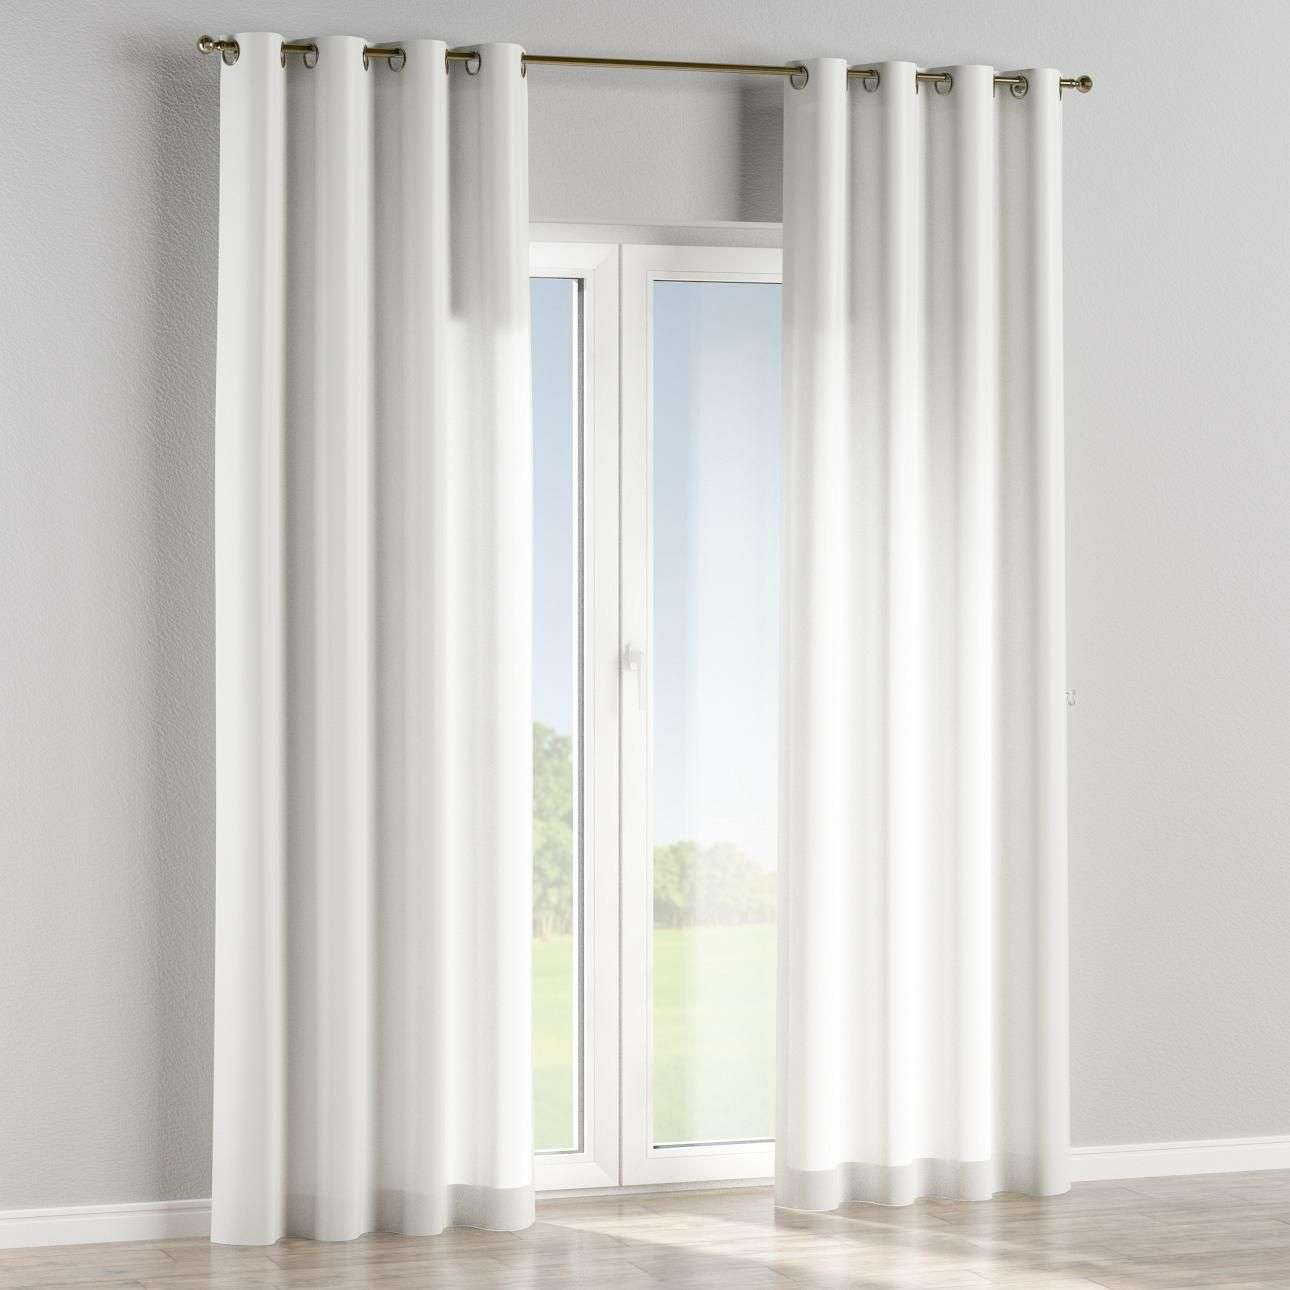 Eyelet lined curtains in collection Bristol, fabric: 125-69